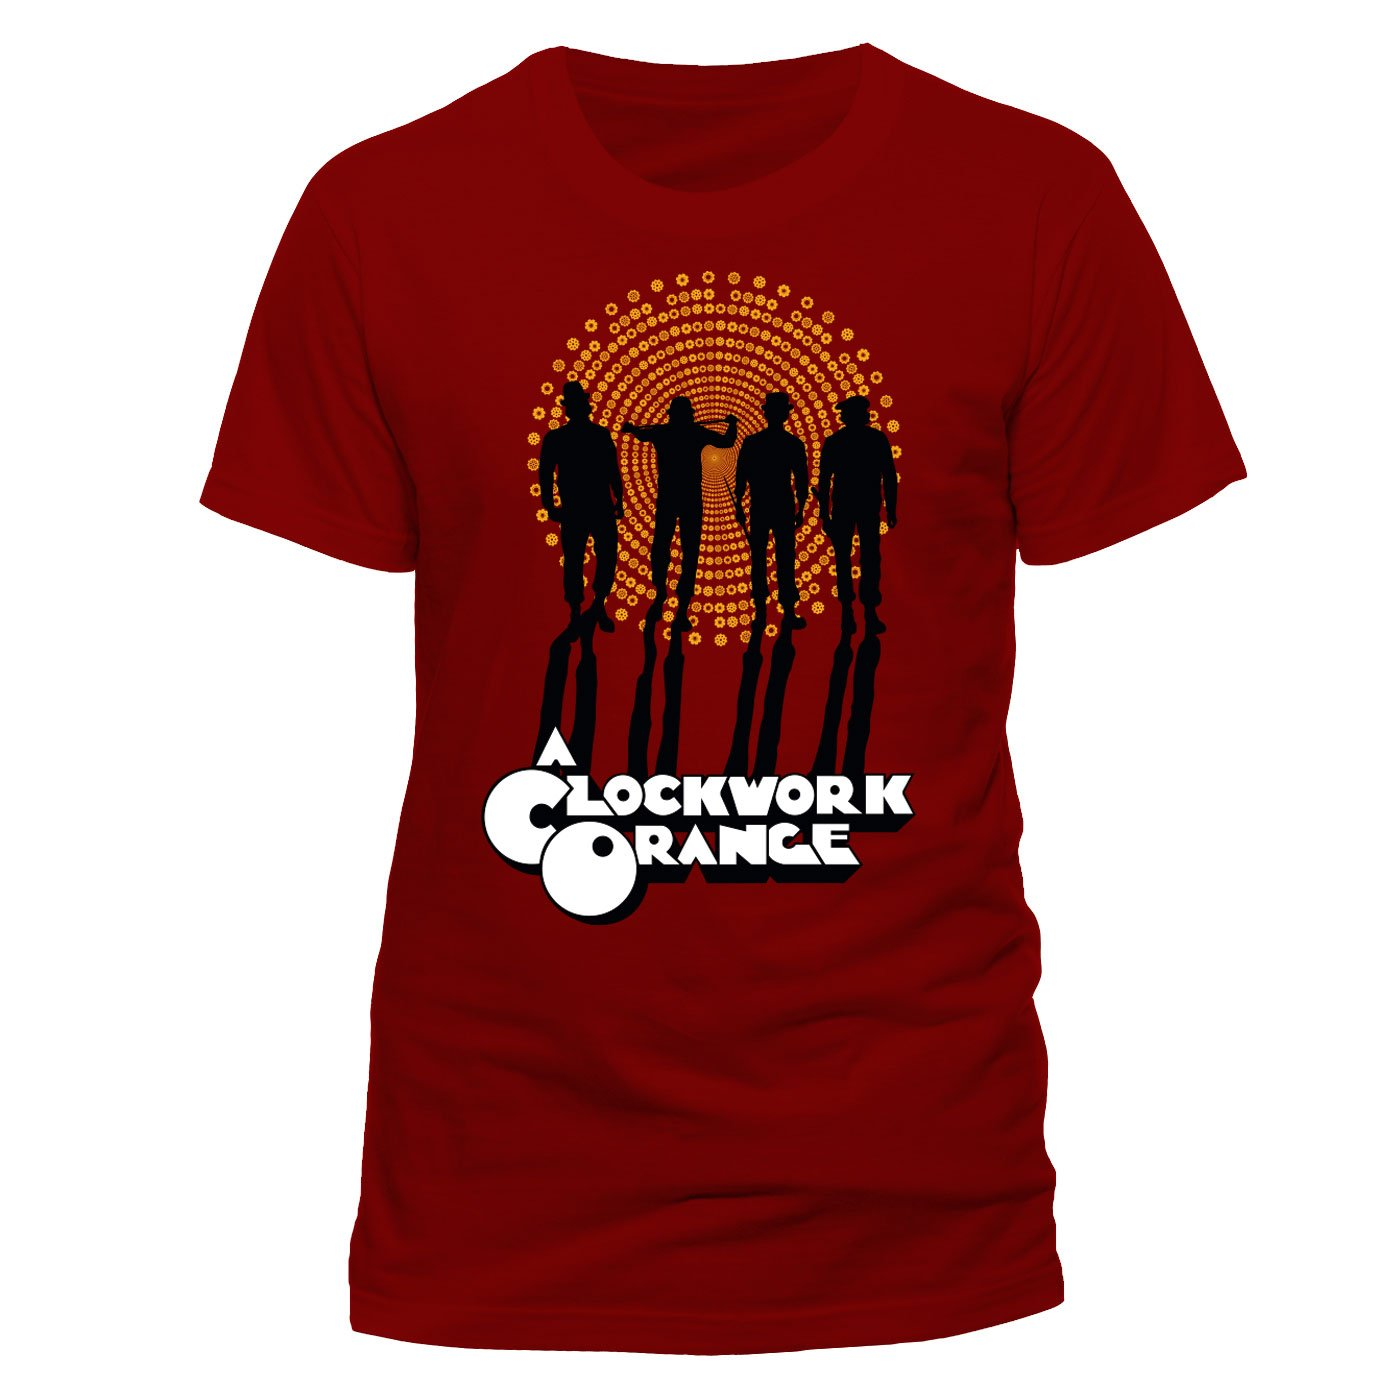 A Clockwork Orange T-Shirt Gang Size M